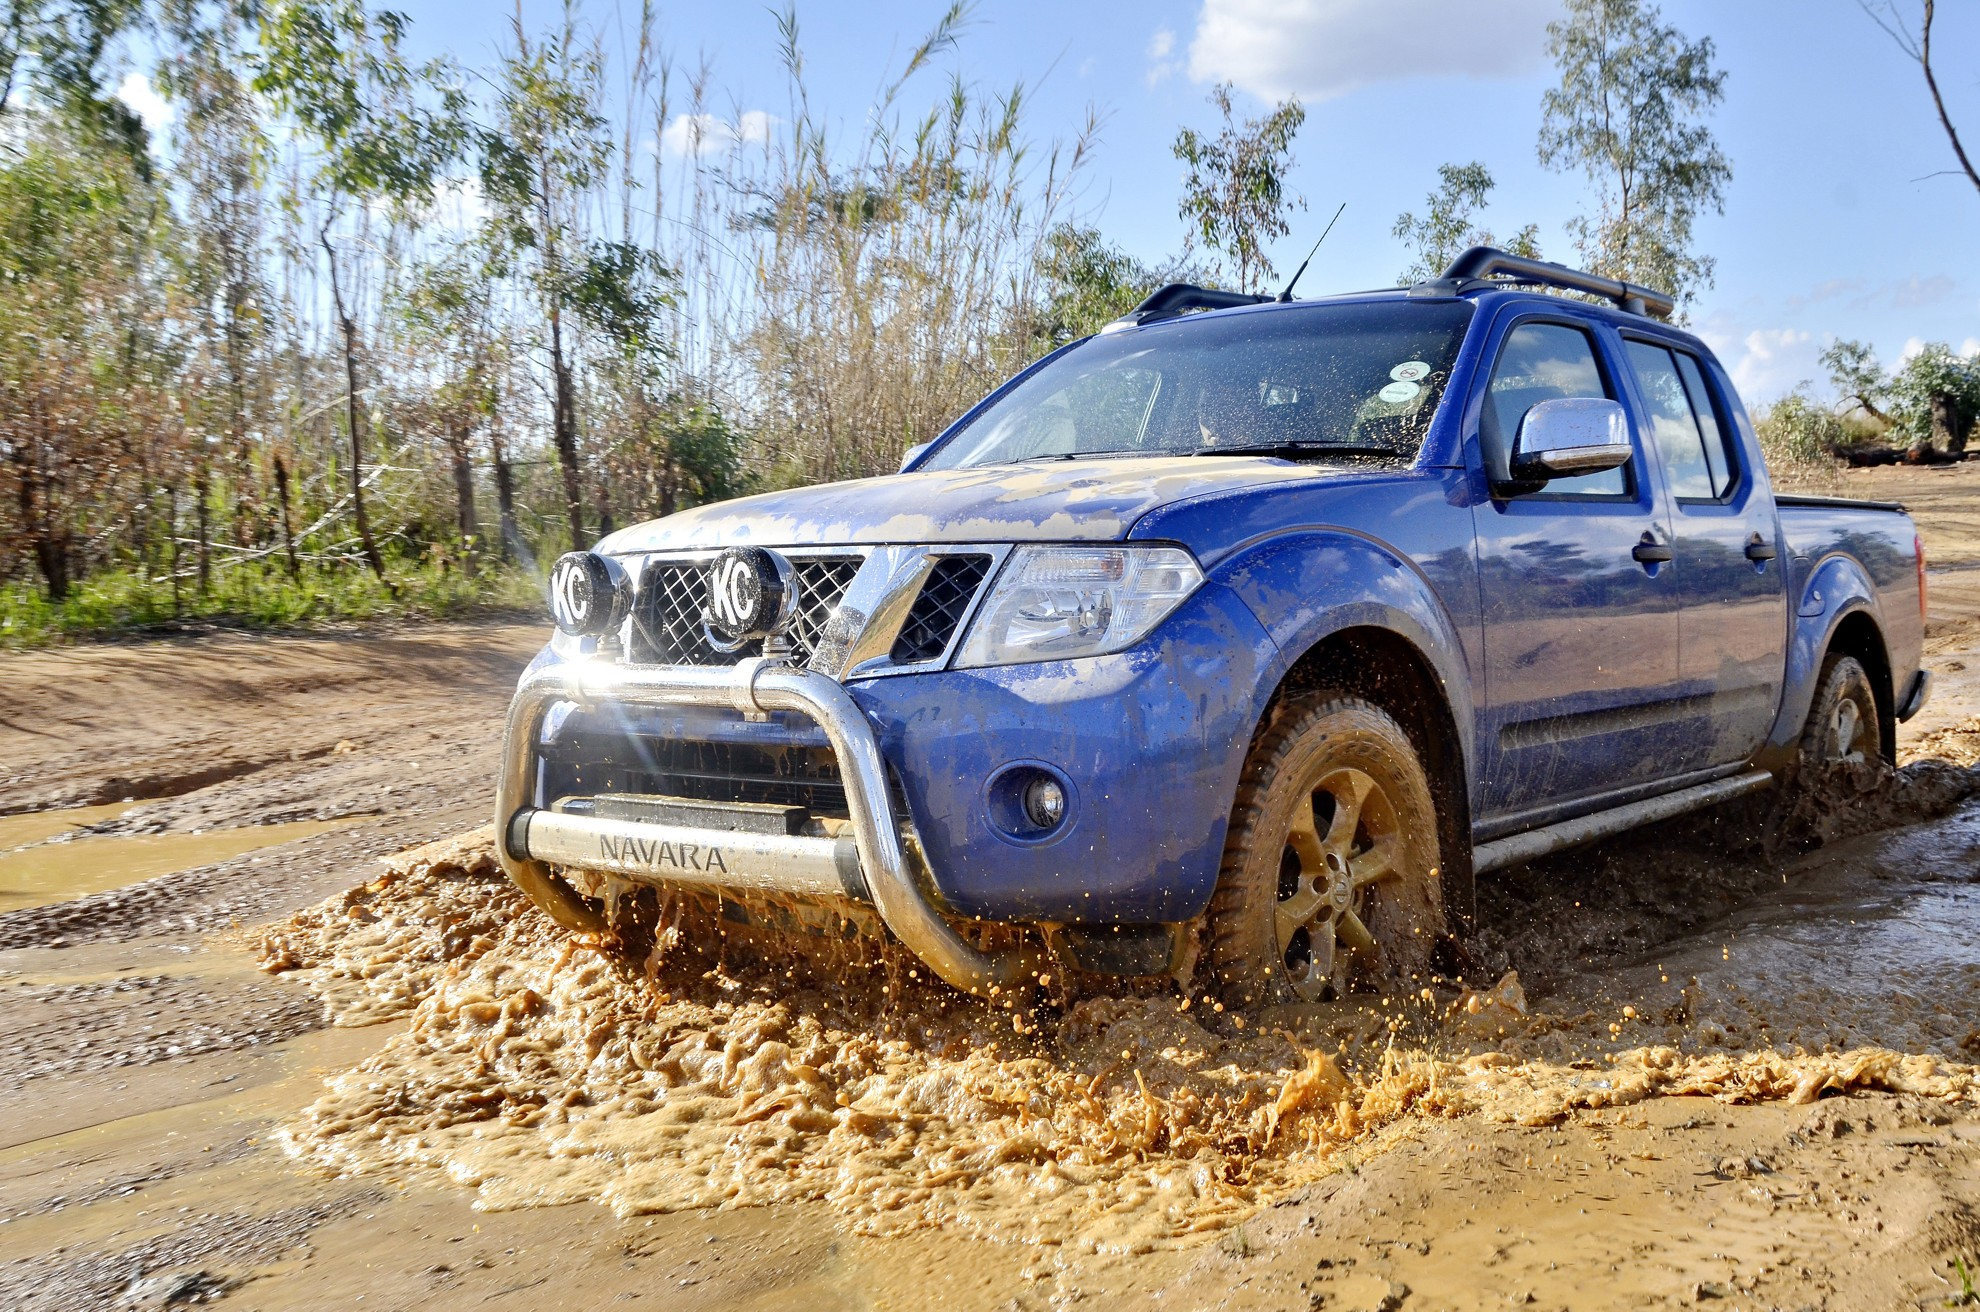 Nissan Safari Offroad